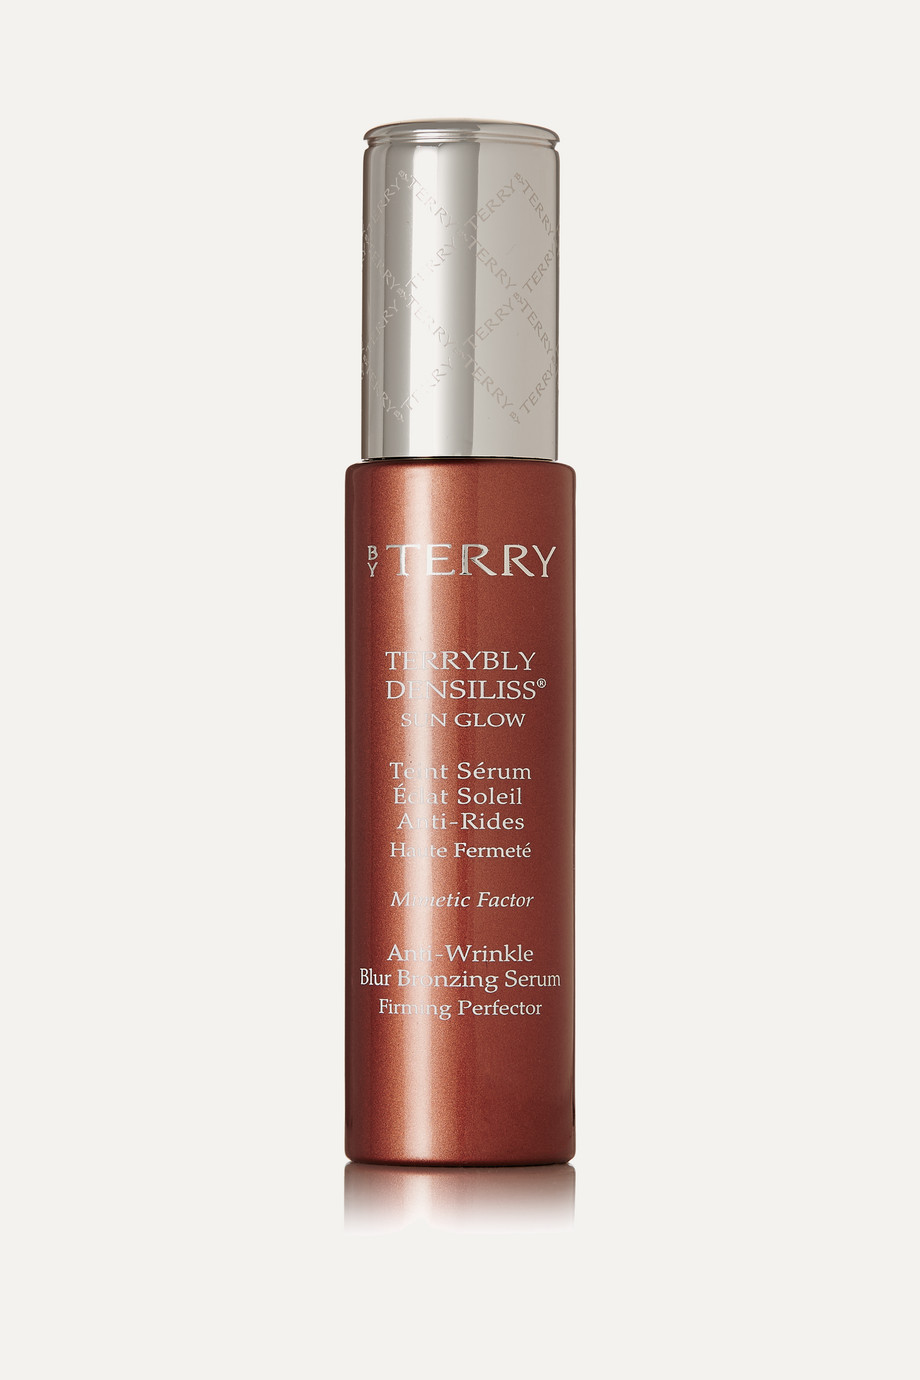 Terrybly Densiliss Sun Glow - Sun Bronze 3, 30ml, by By Terry